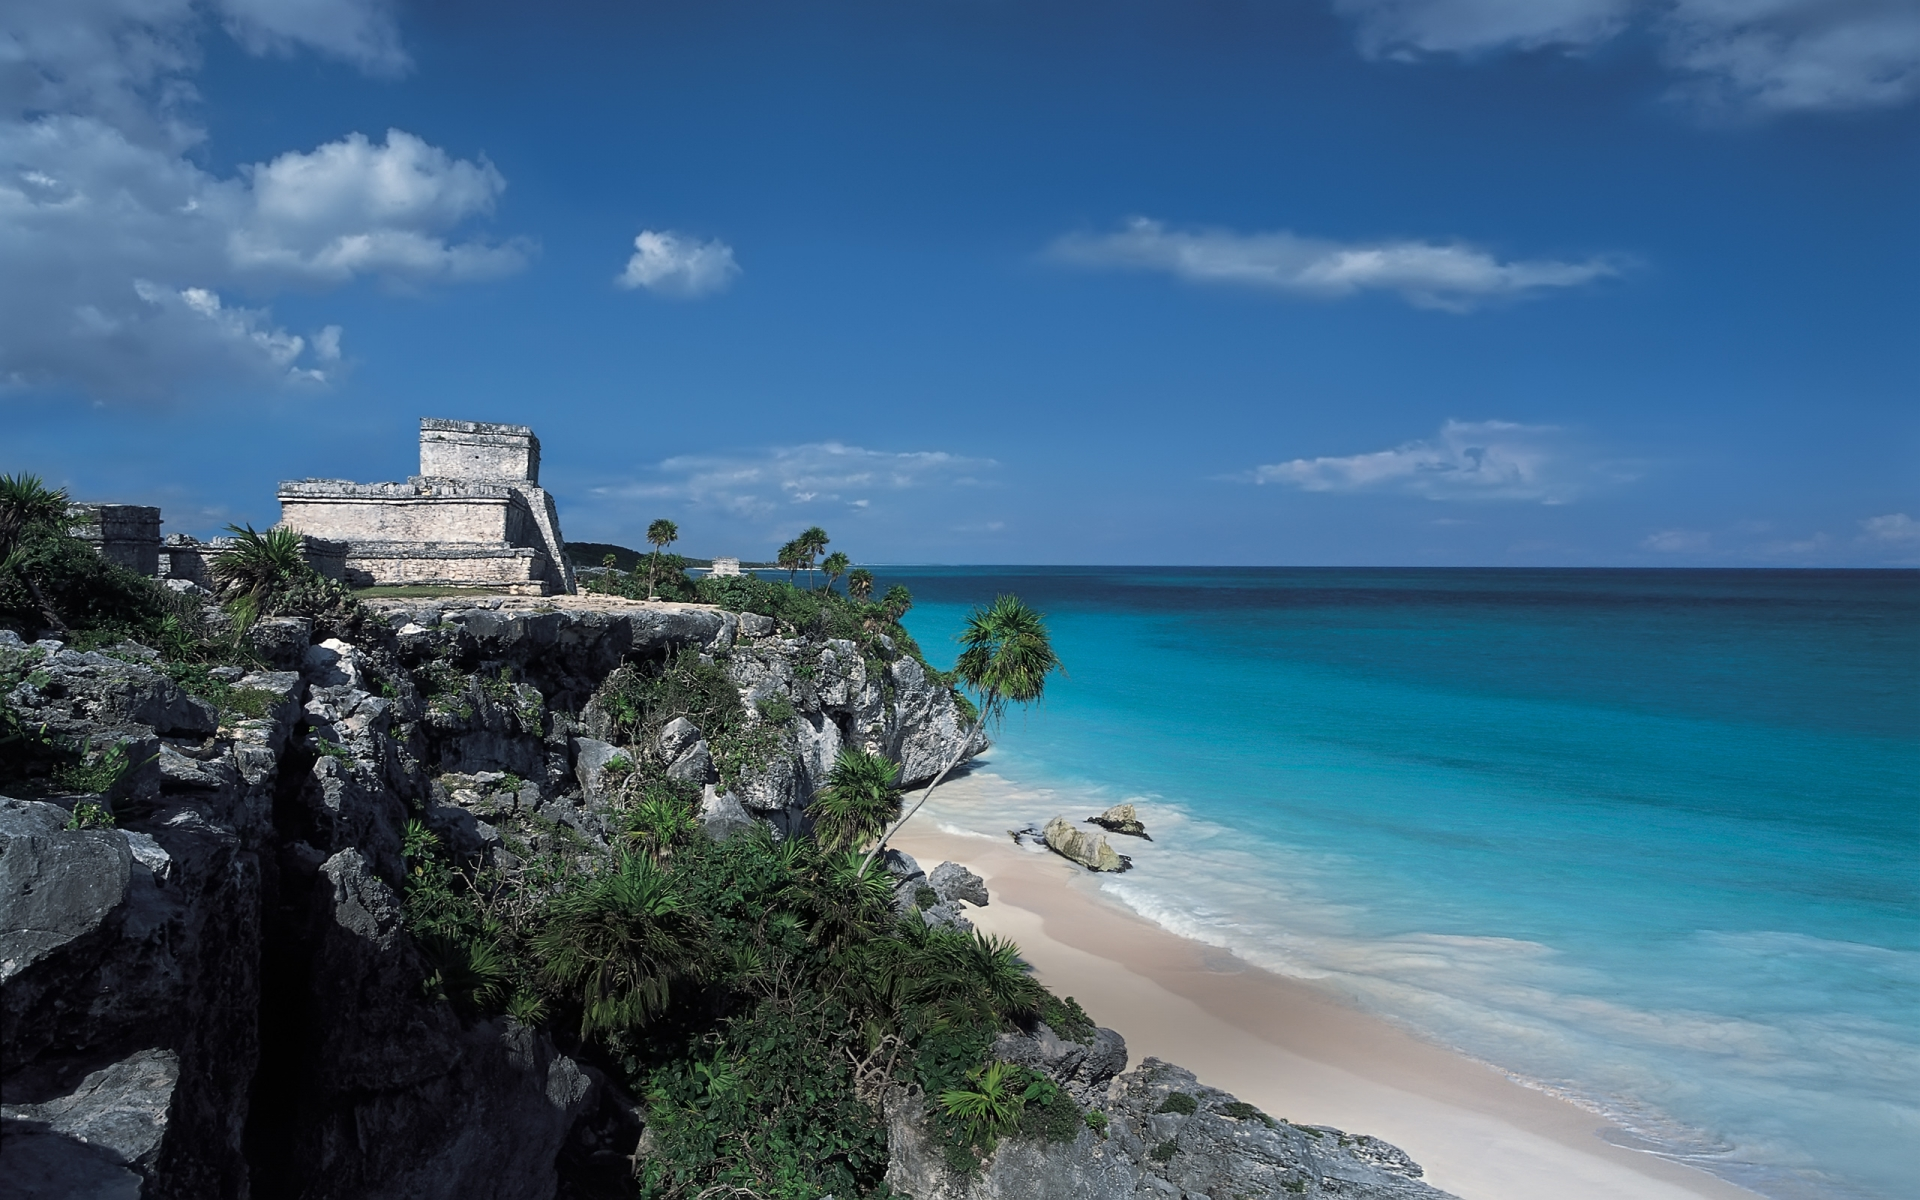 Tulum Mexico Wallpaper Top Wallpapers   HD Desktop Backgrounds 1920x1200